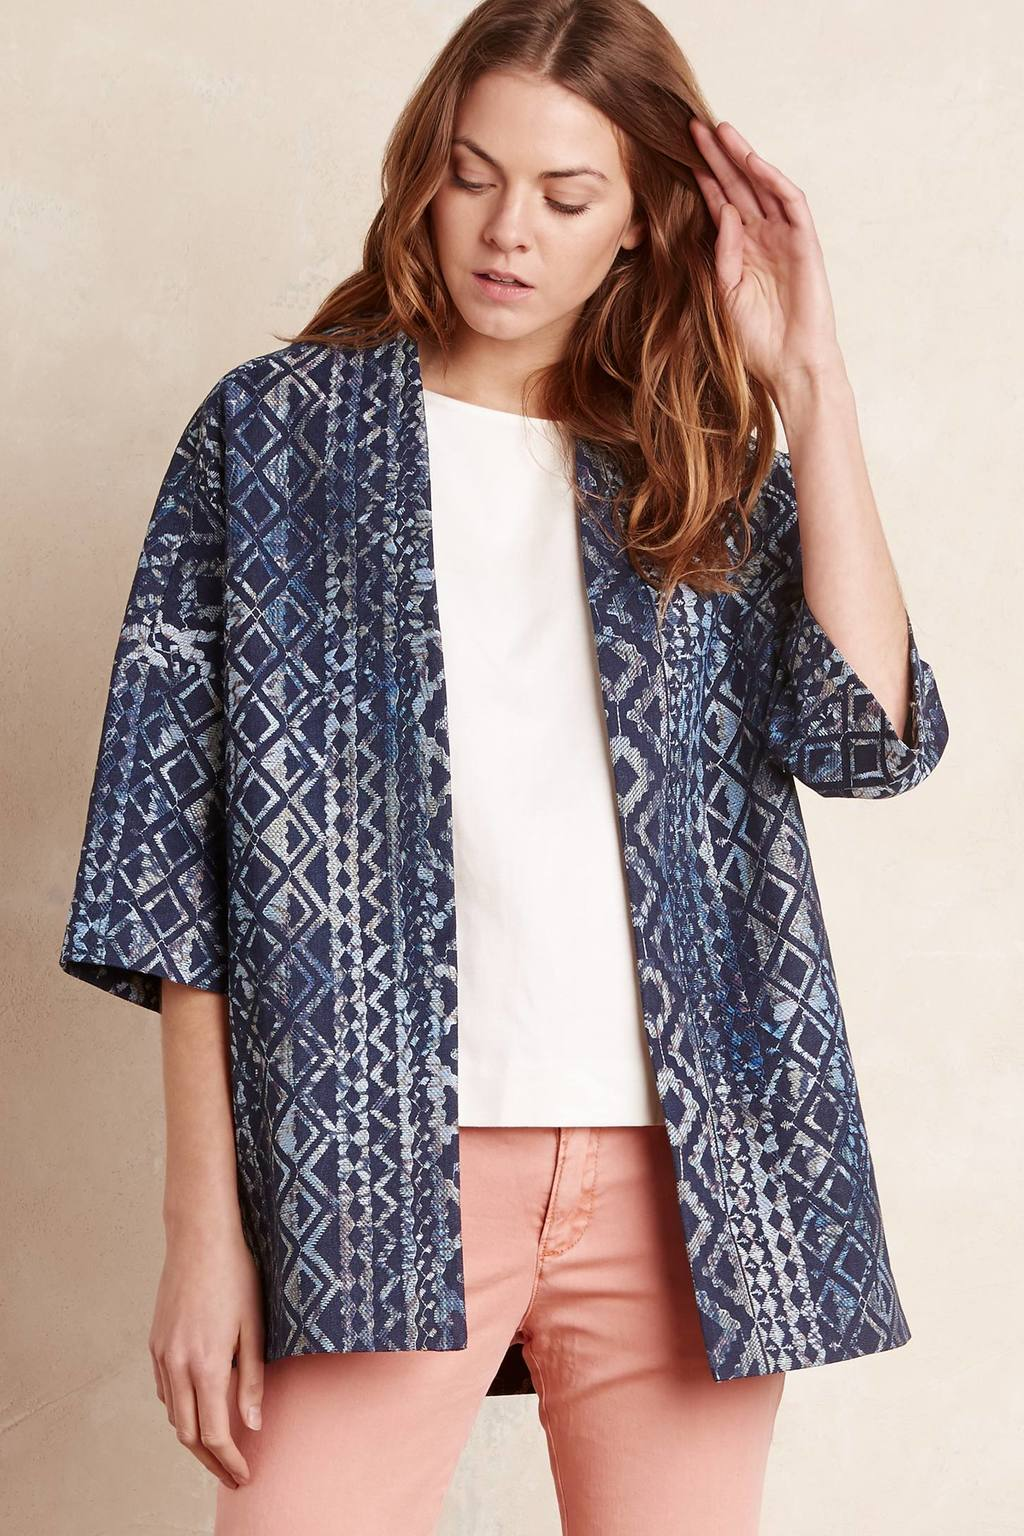 Talise Aztec Coat, Blue - length: below the bottom; collar: round collar/collarless; fit: loose; style: single breasted; predominant colour: navy; occasions: casual, creative work; fibres: polyester/polyamide - stretch; sleeve length: 3/4 length; sleeve style: standard; collar break: low/open; pattern type: fabric; pattern: patterned/print; texture group: brocade/jacquard; season: s/s 2016; wardrobe: highlight